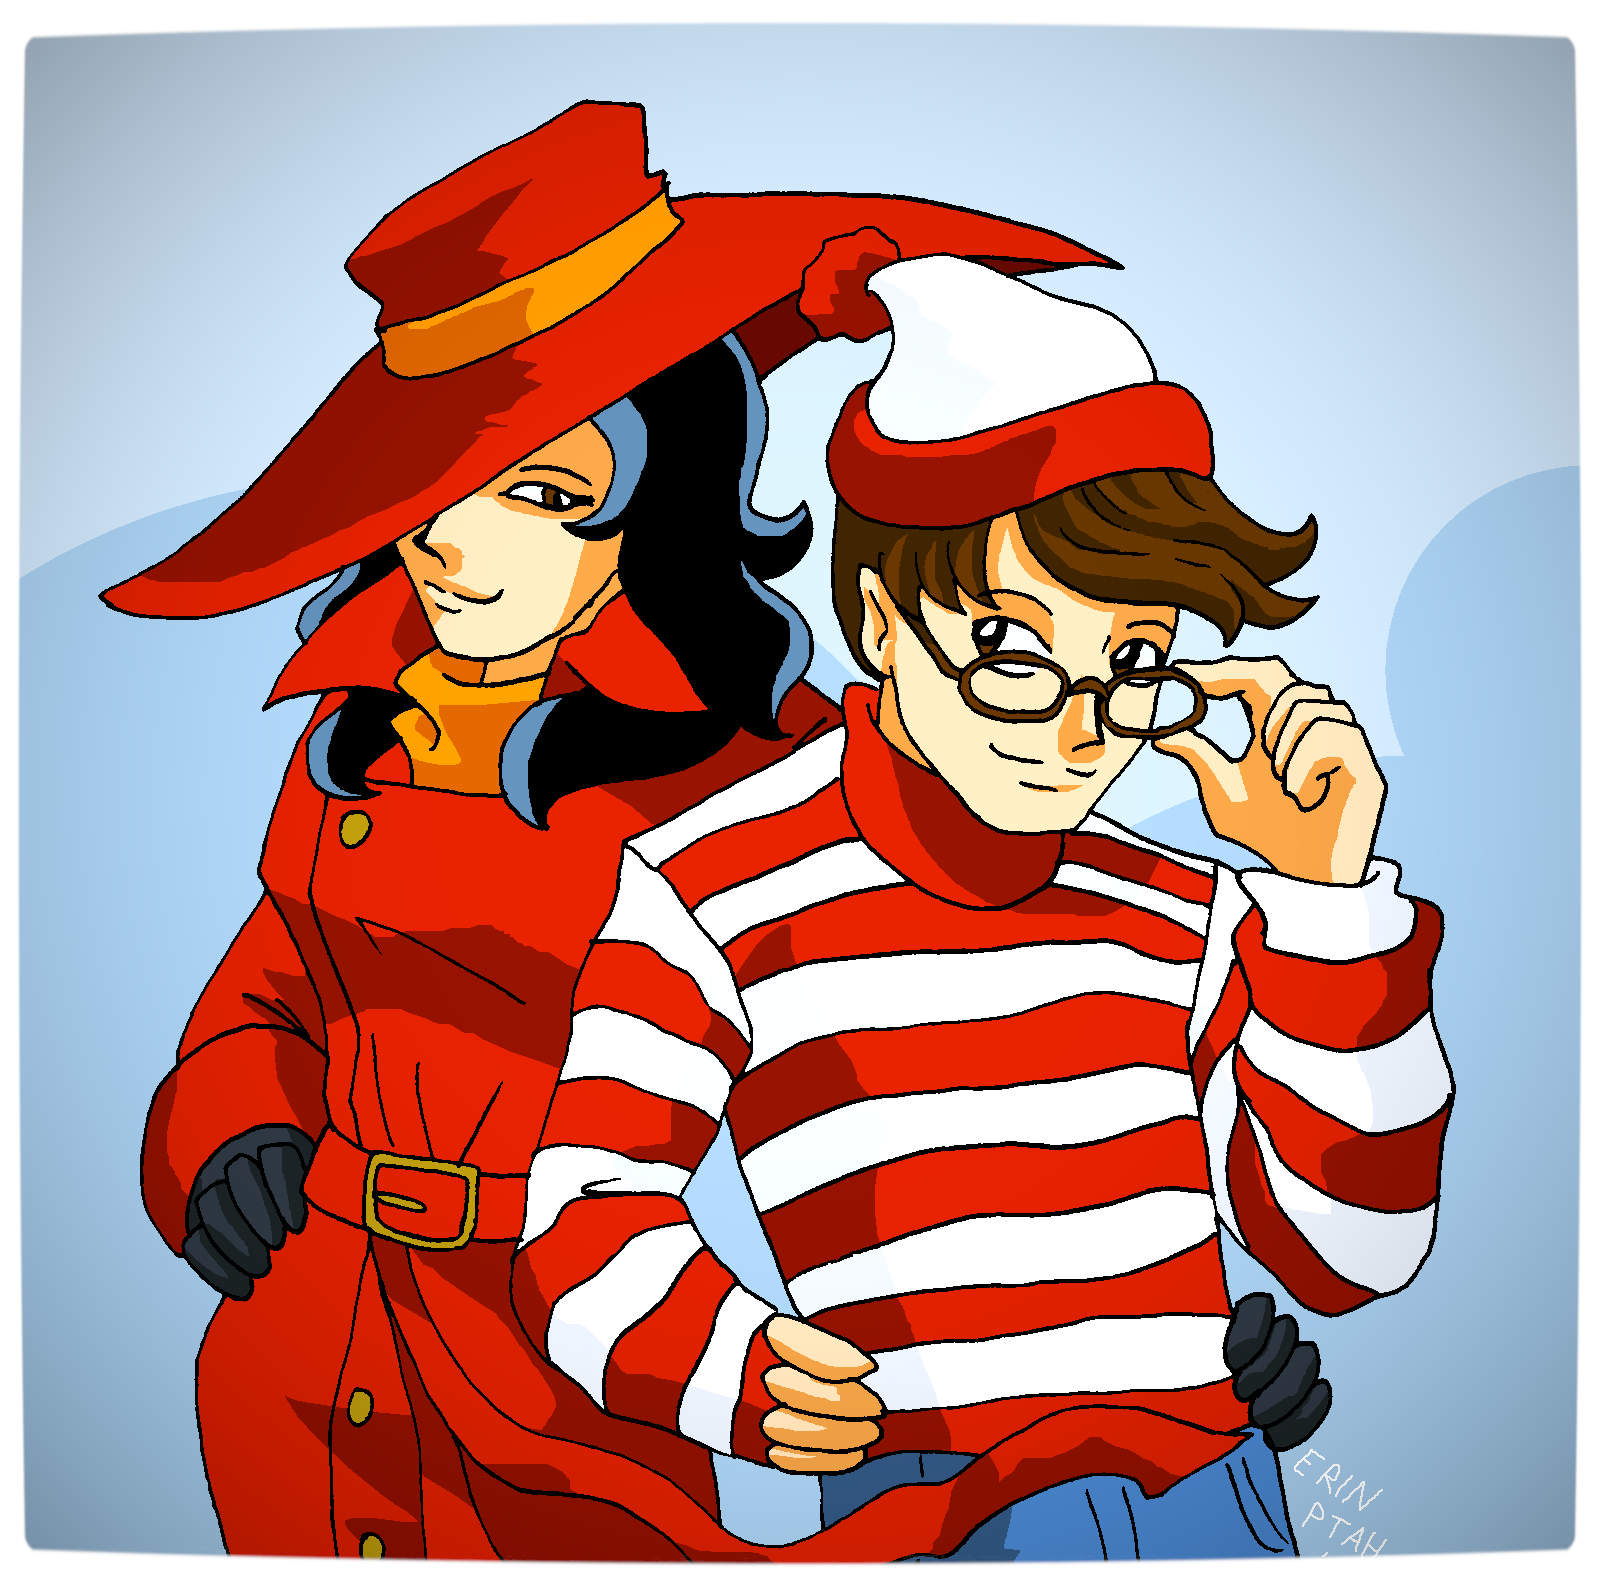 Vamers - Artistry - Carmen Sandiego and Where's Wally - A Perfectly Unfindable Match - Lose Myself with You by Erin Ptah